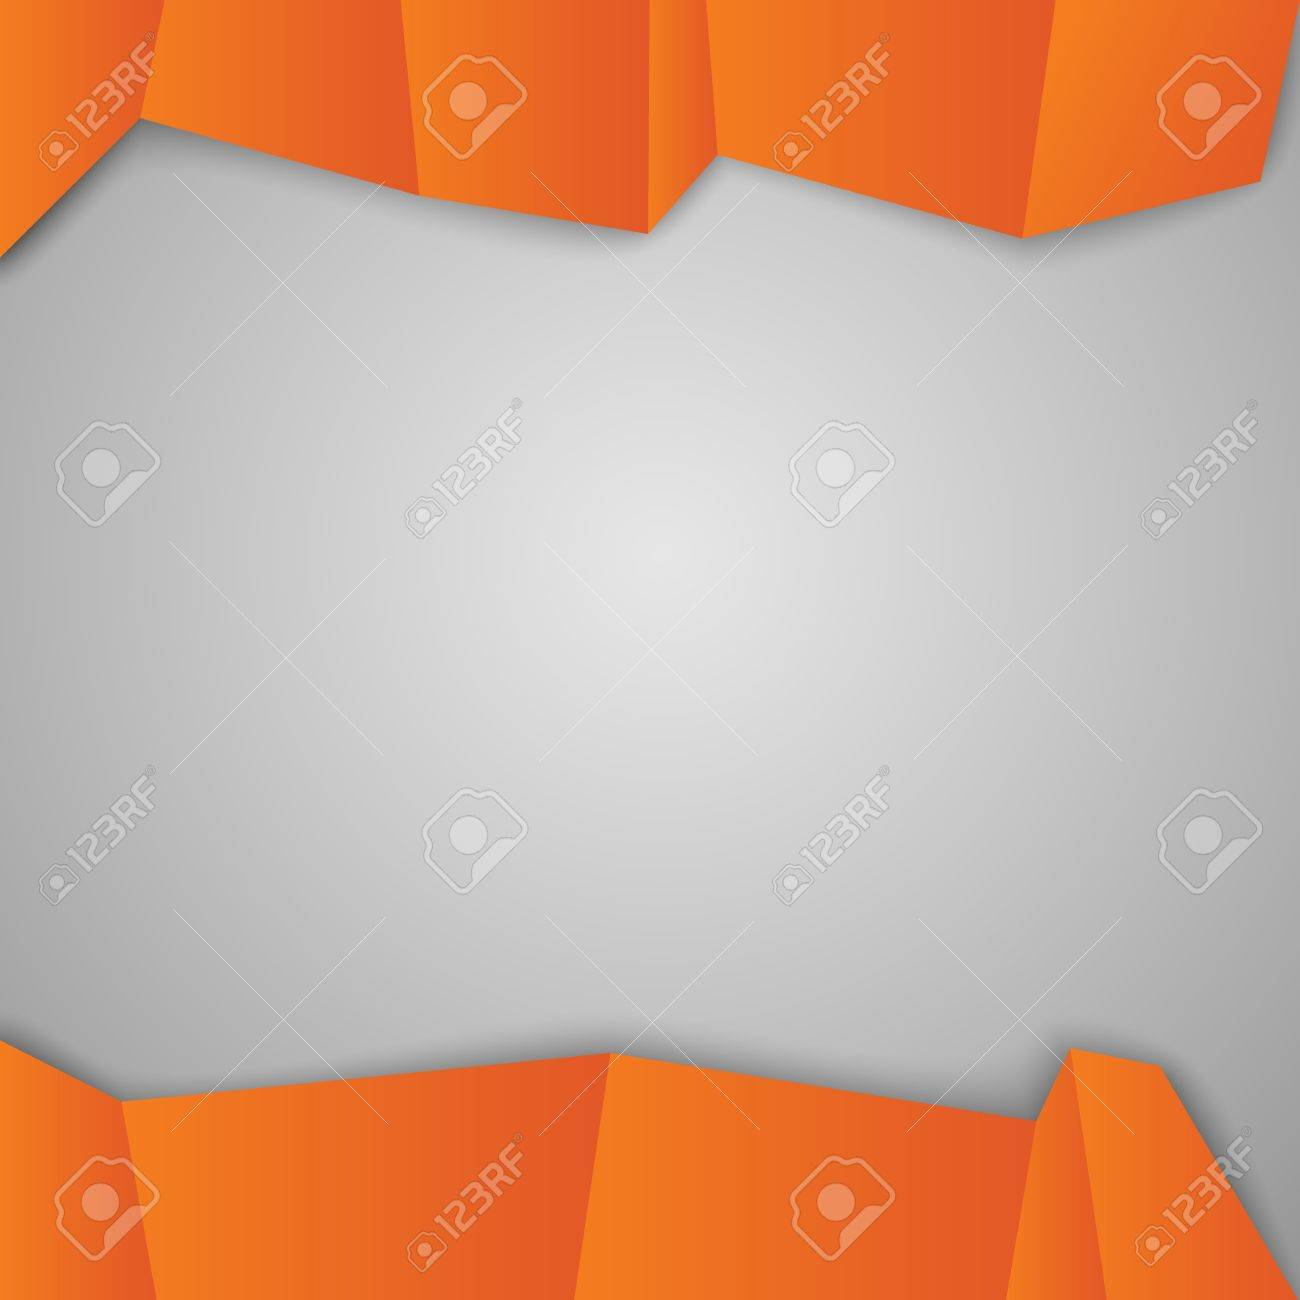 Orange squares  Geometric squares shapes  Vector illustration, contains transparencies, gradients and effects Stock Vector - 19092215